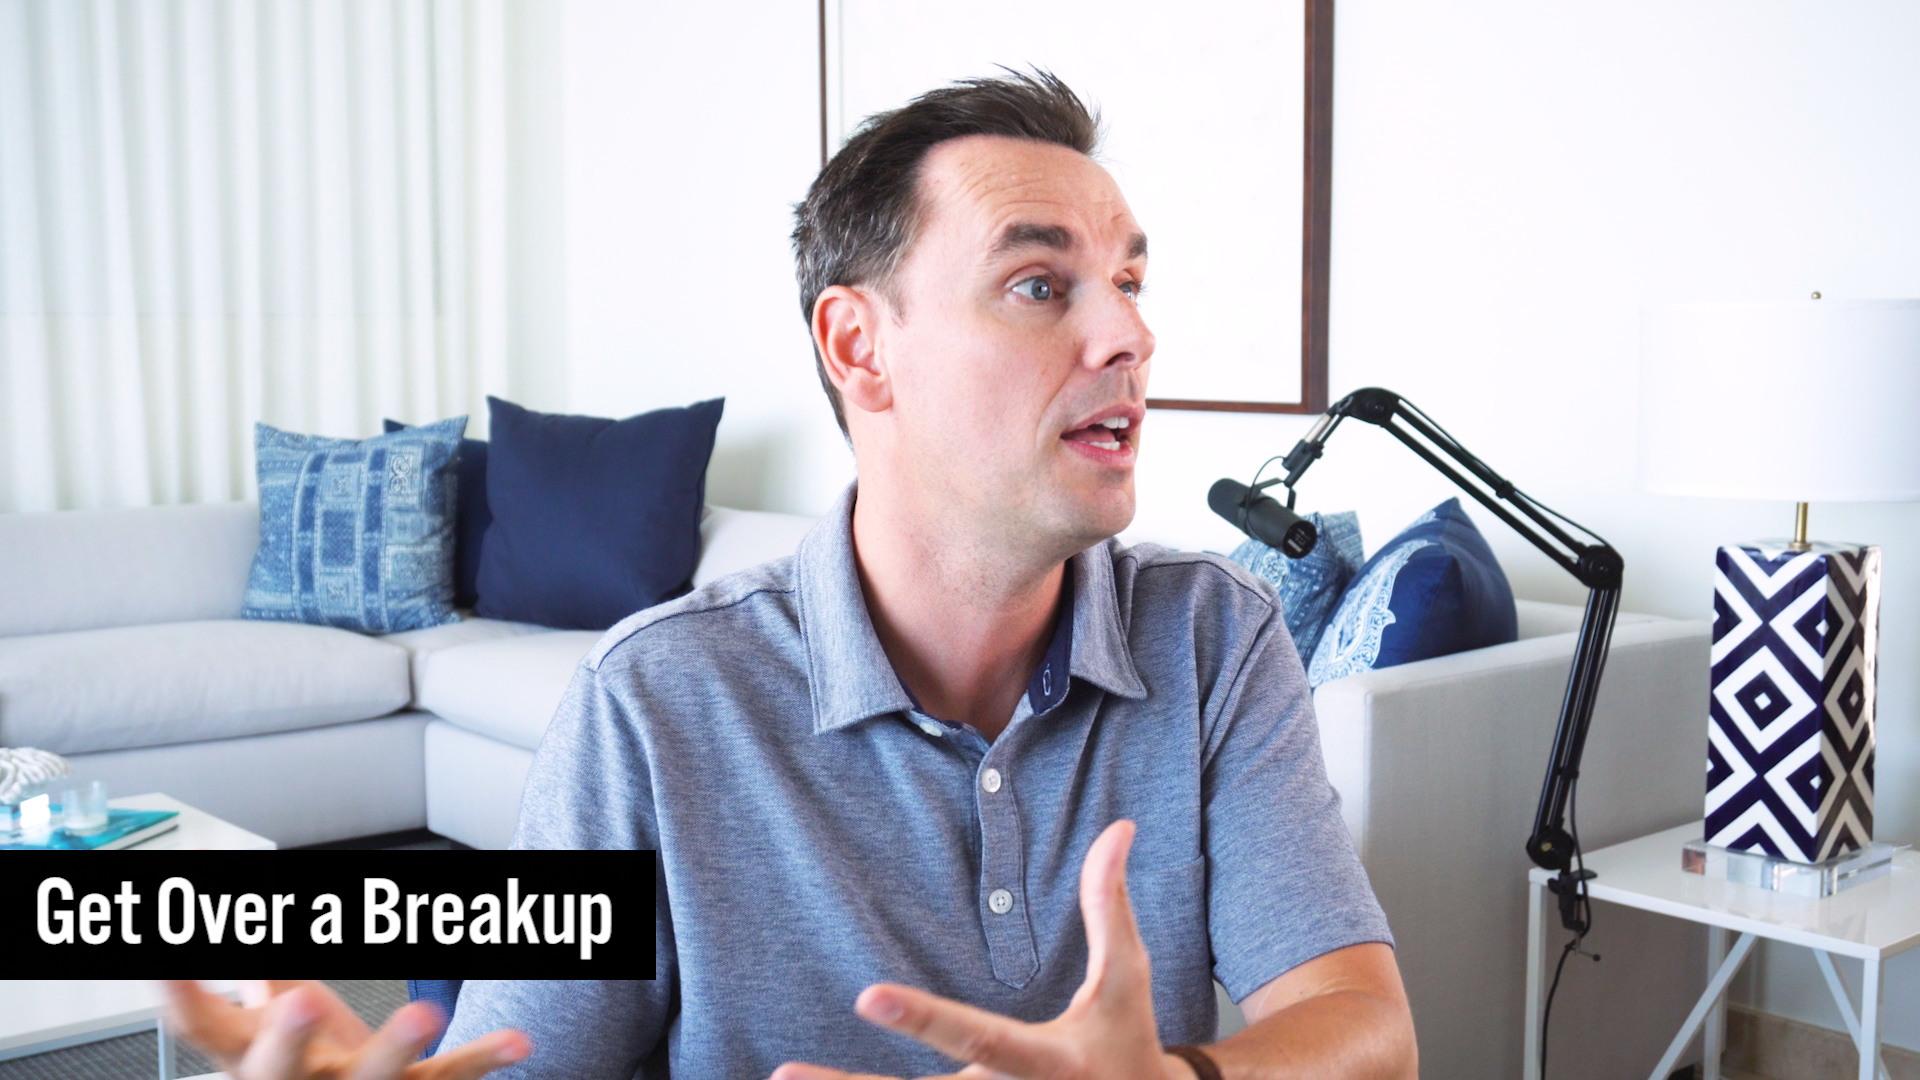 How to Get Over a Breakup - Brendon Burchard